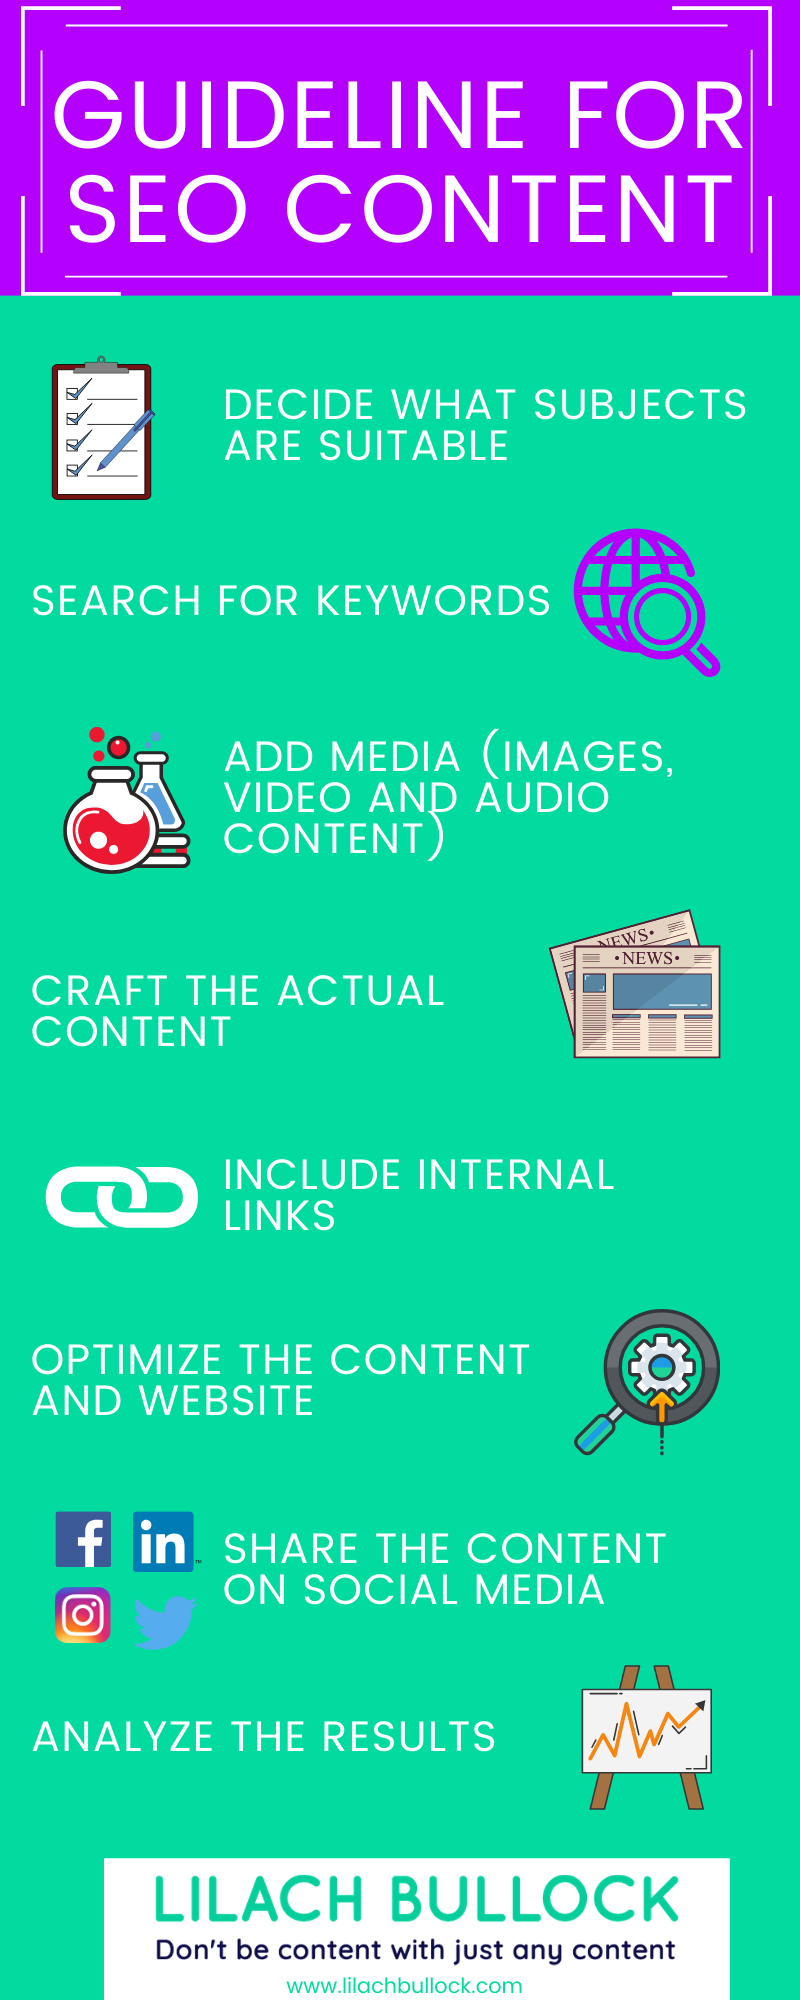 guideline for seo content